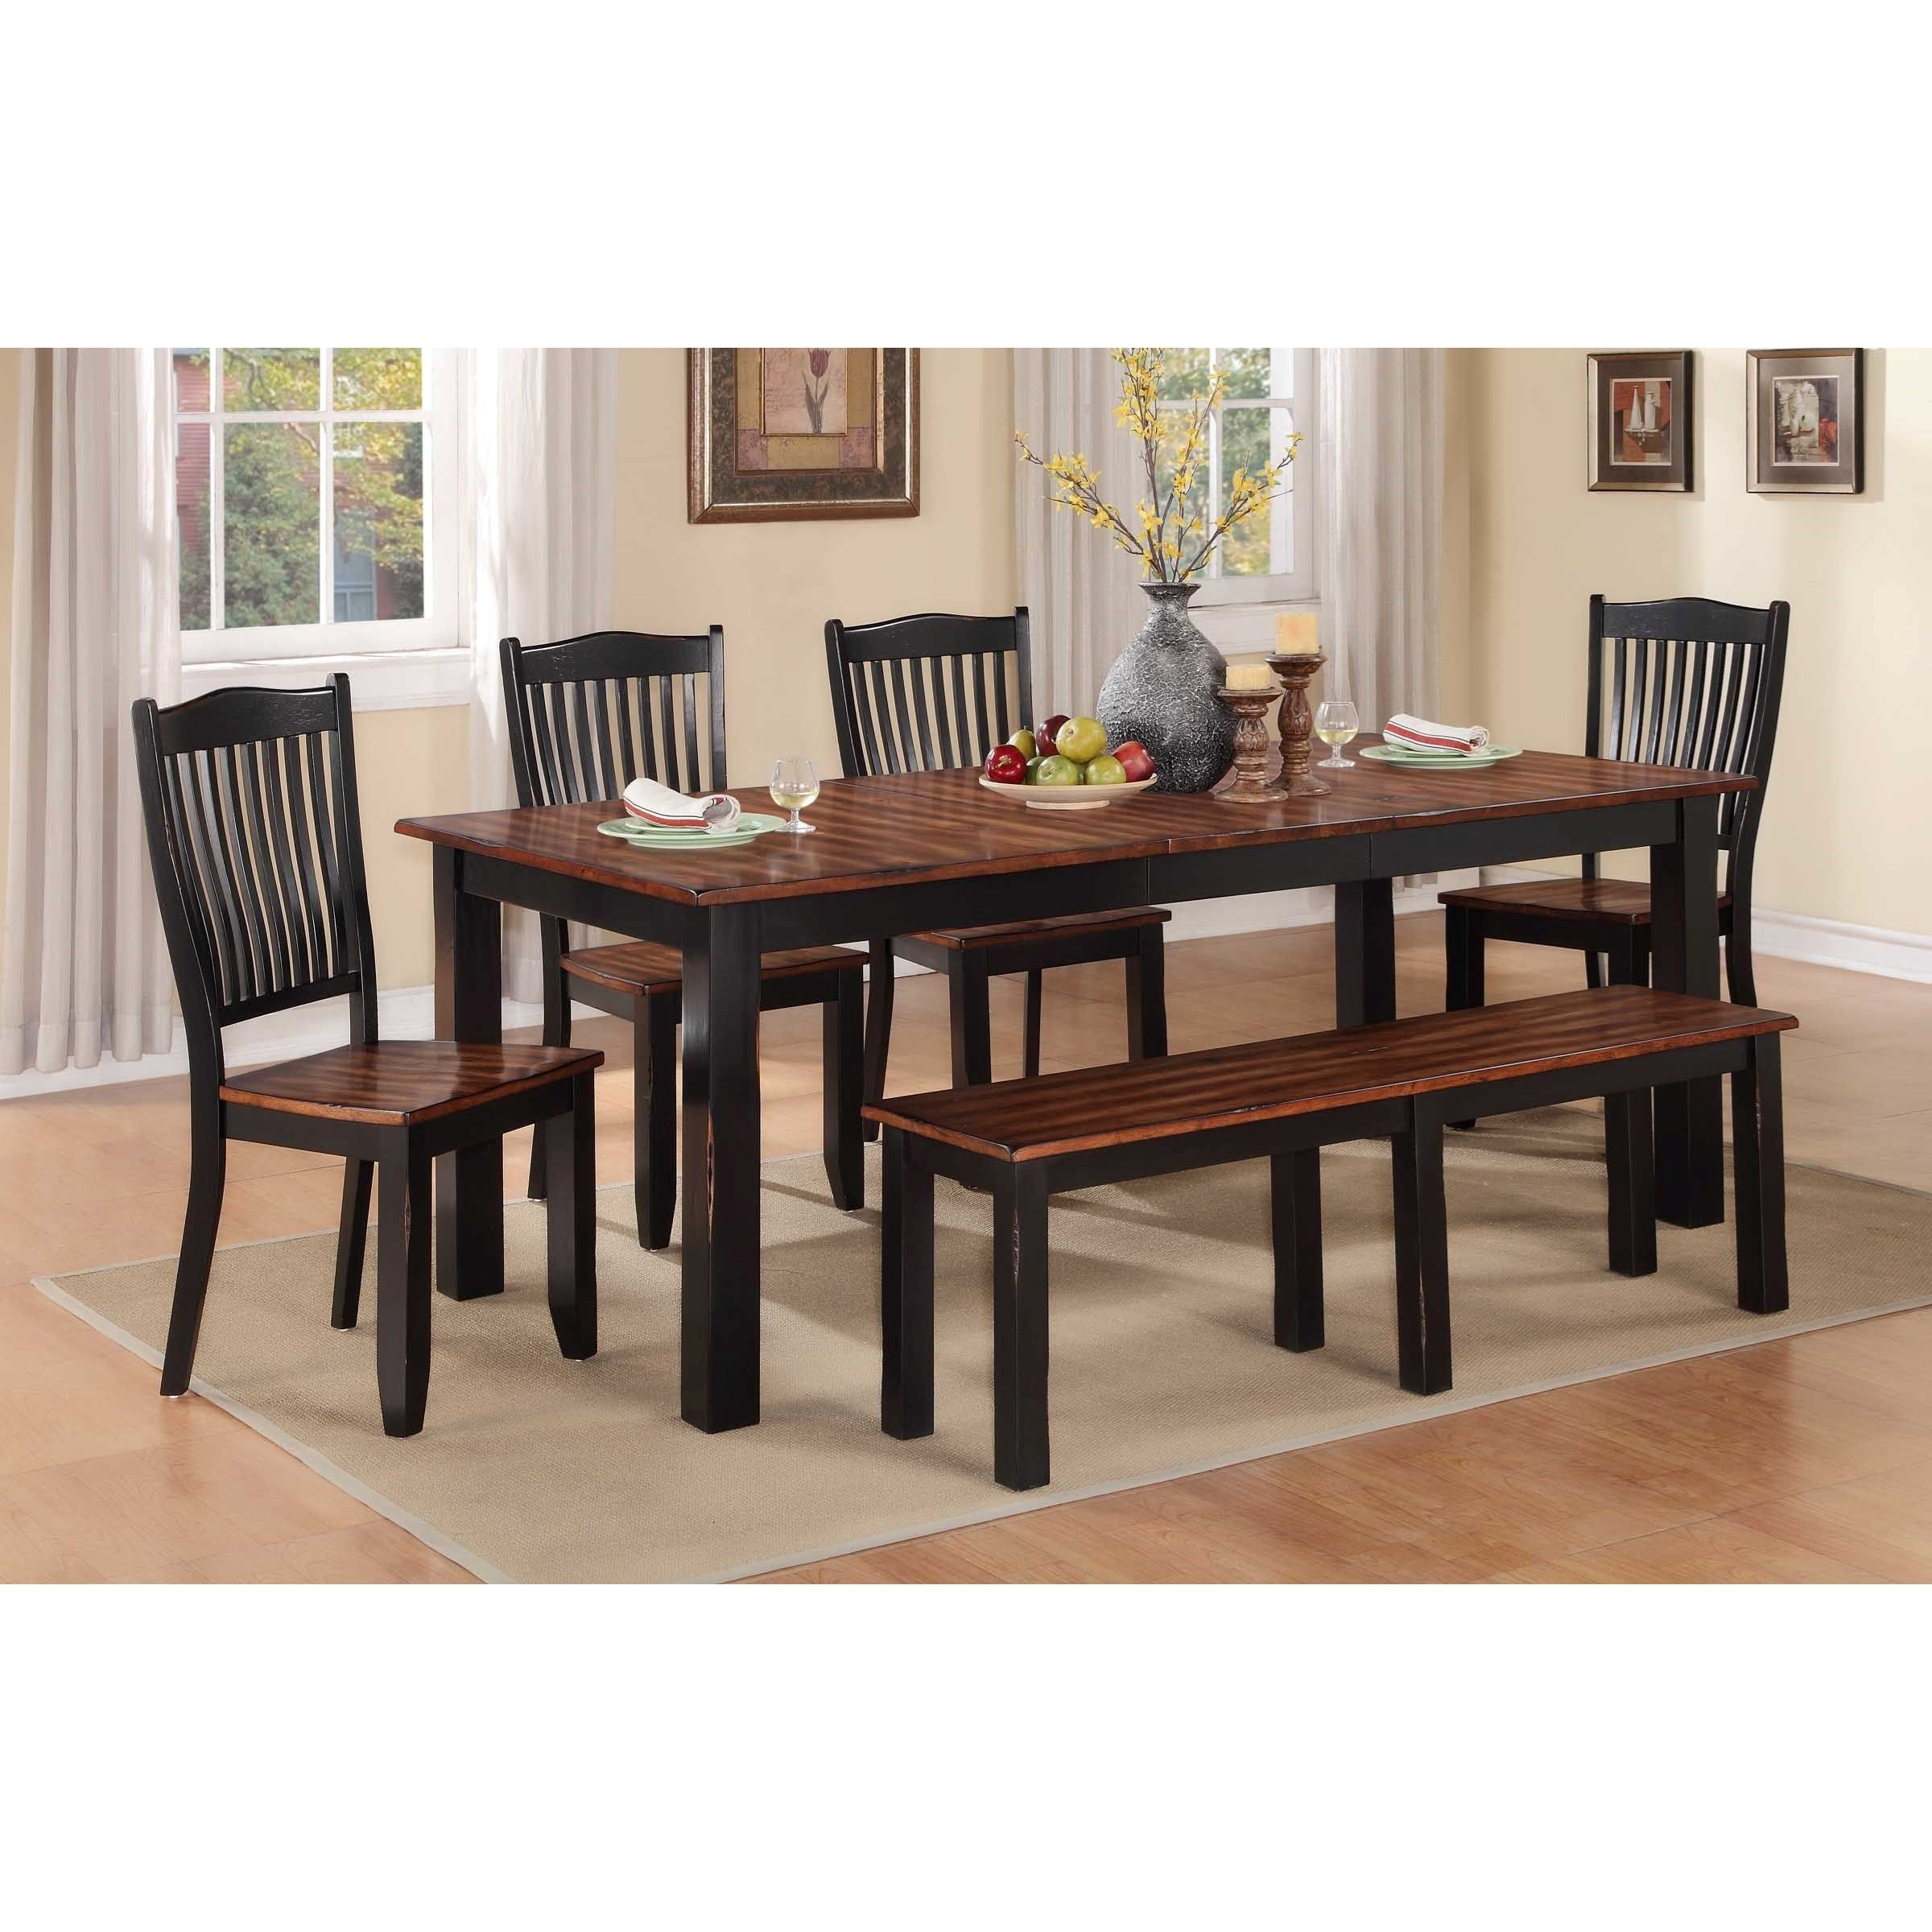 Carson 6 Piece Dining Set with Bench by Winners ly